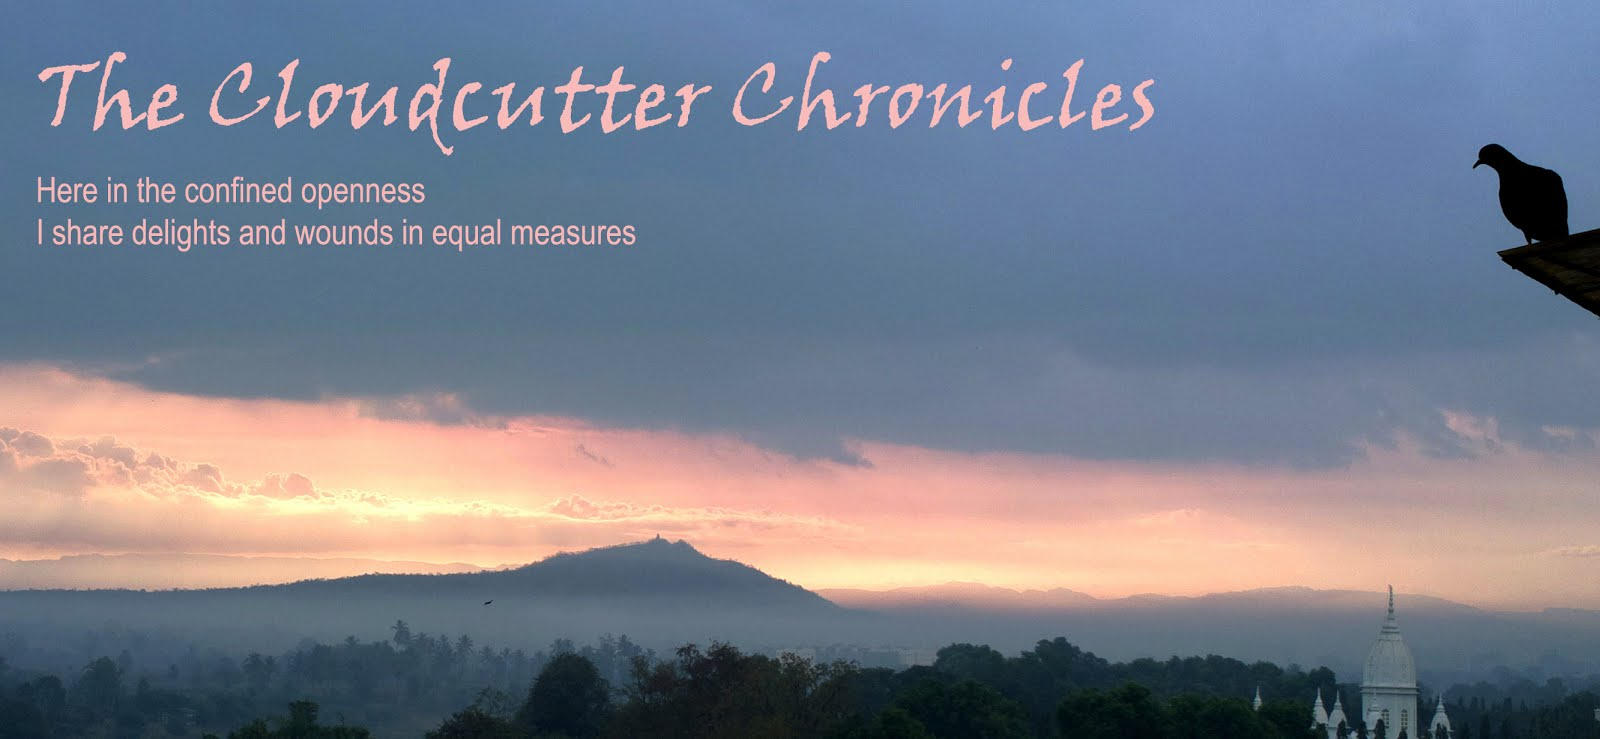 The Cloudcutter Chronicles